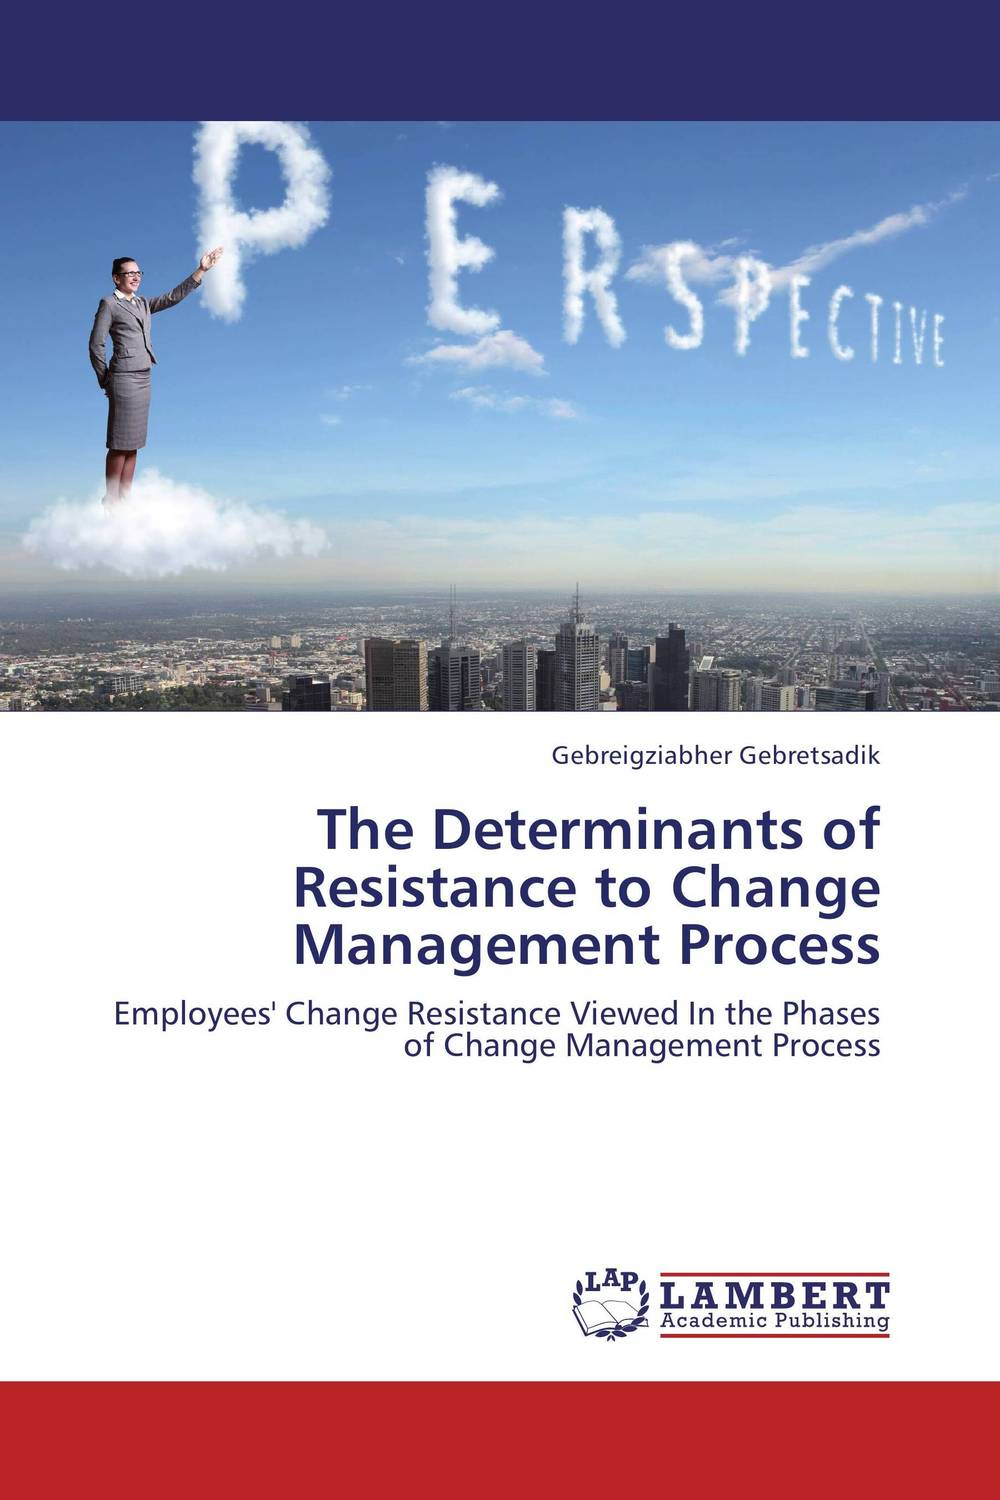 The Determinants of Resistance to Change Management Process driven to distraction